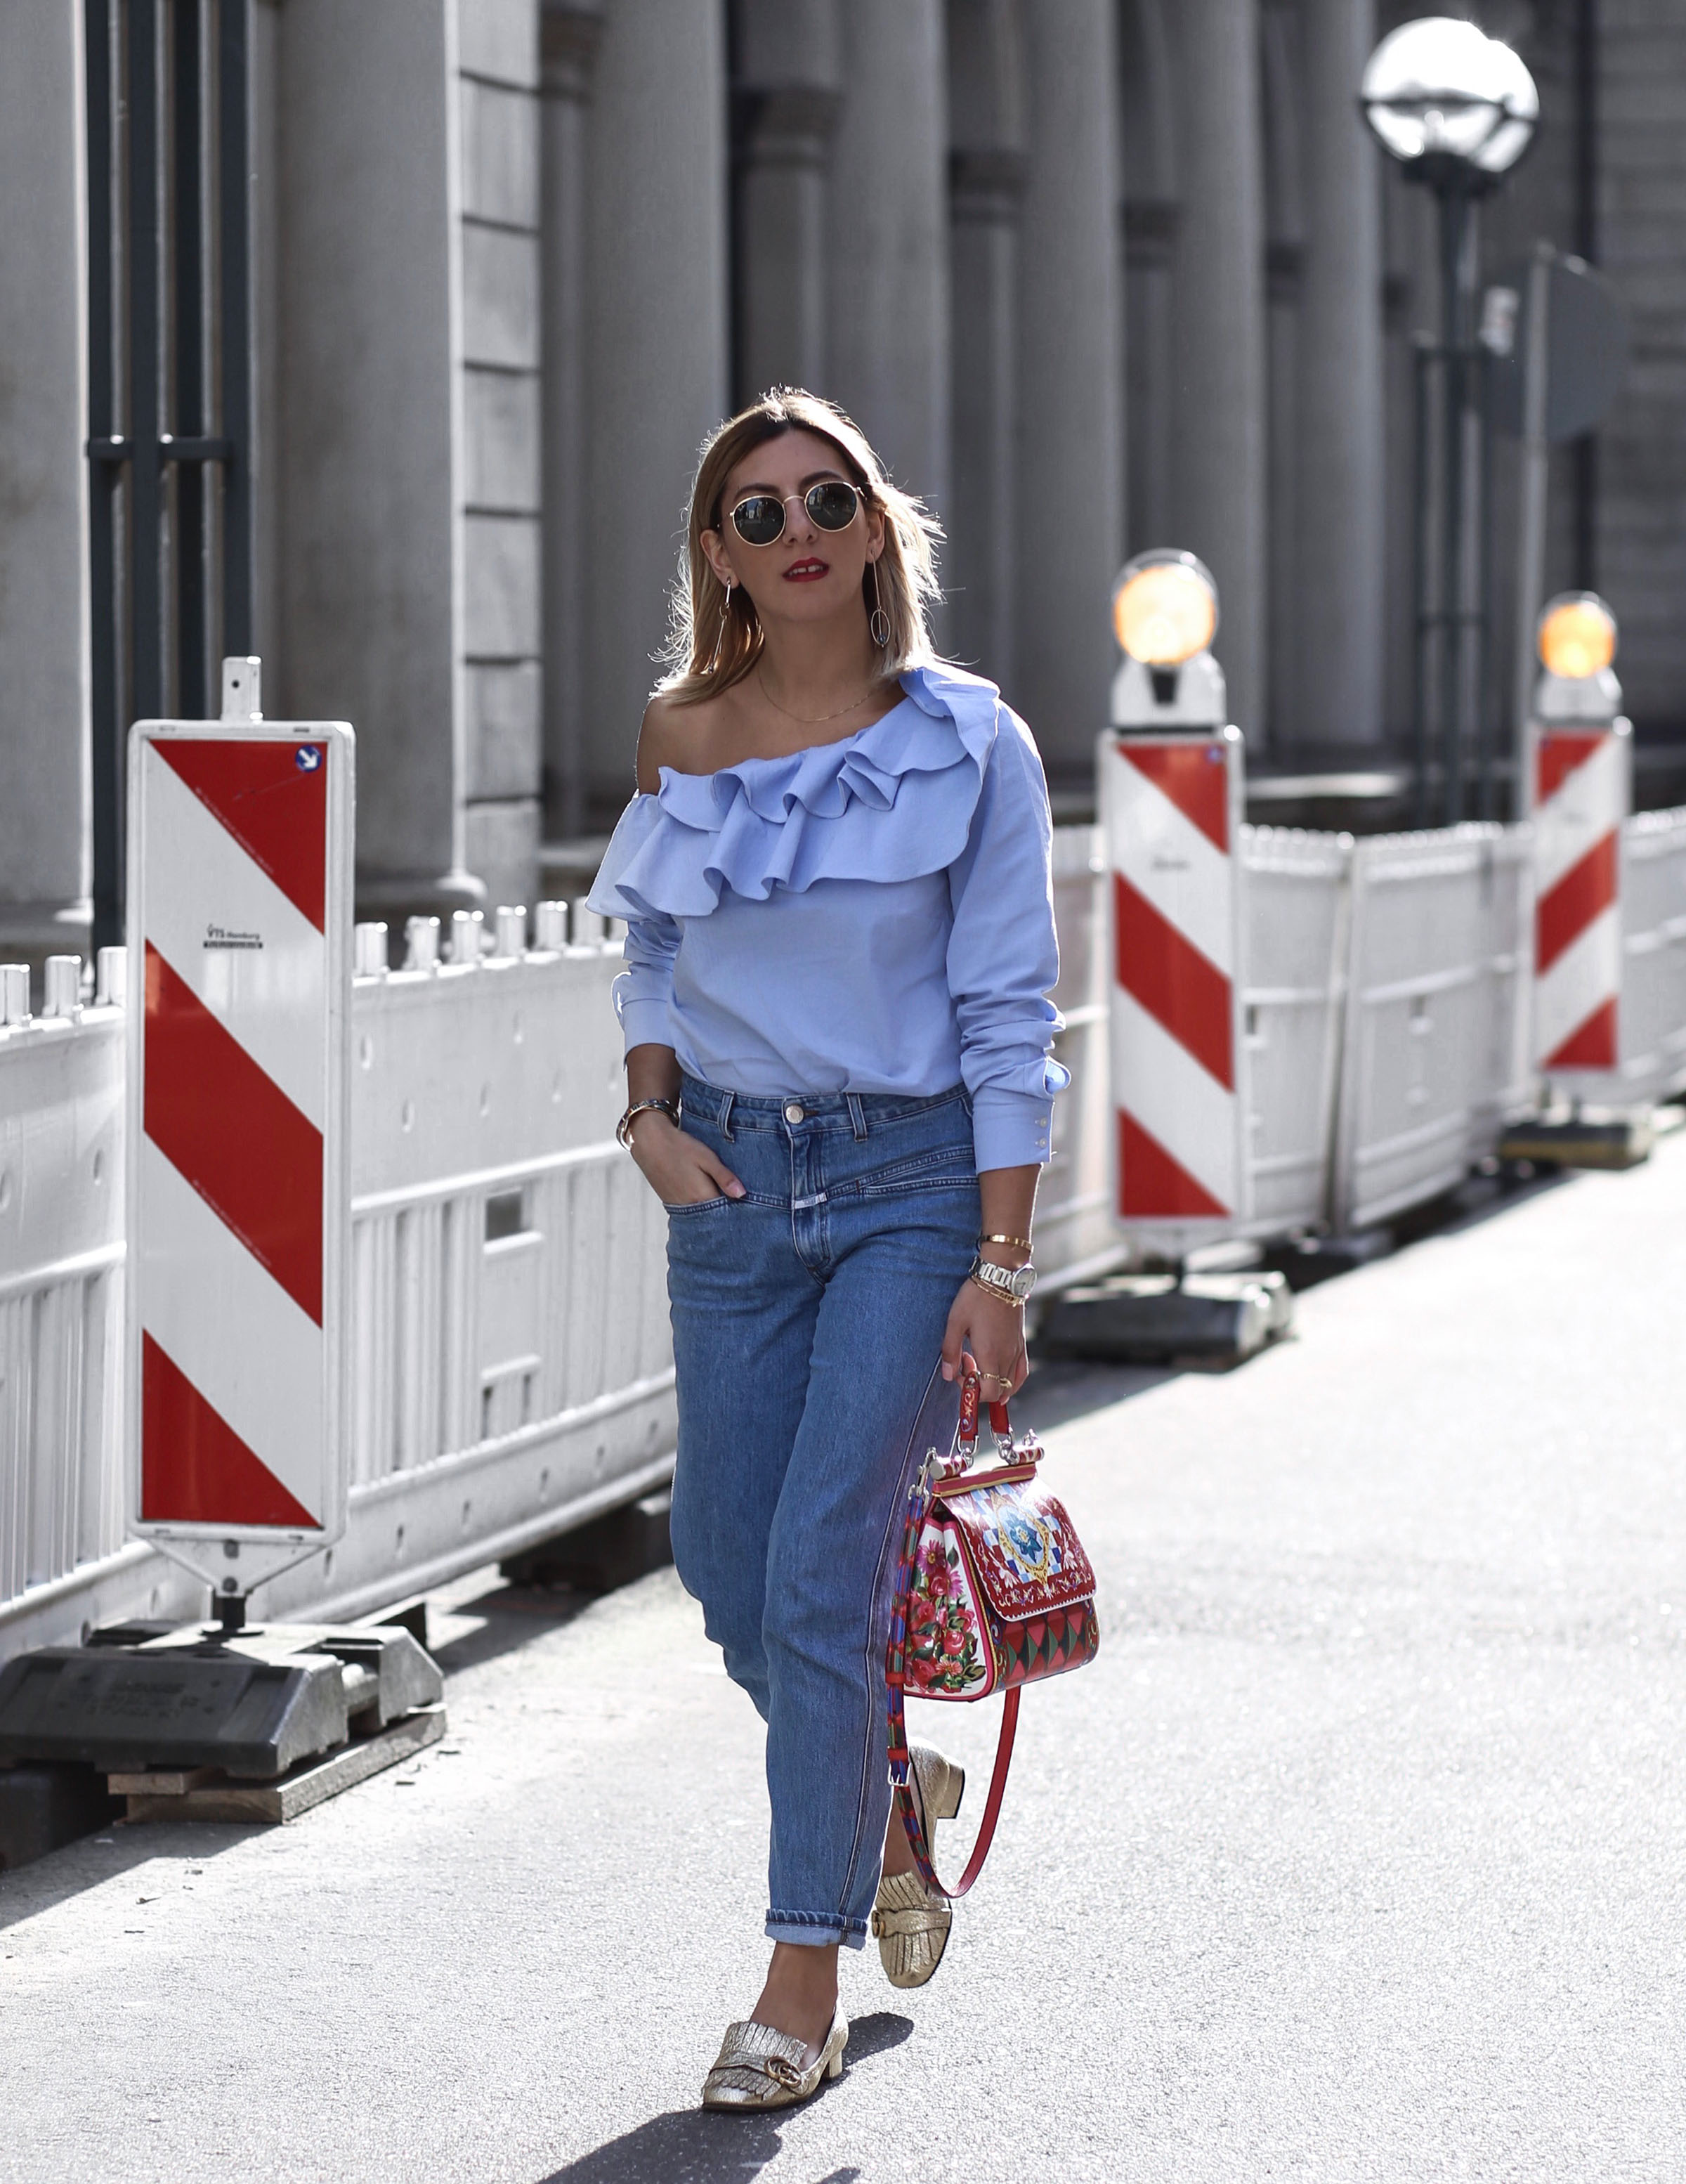 aylin_koenig_fashion_blogger